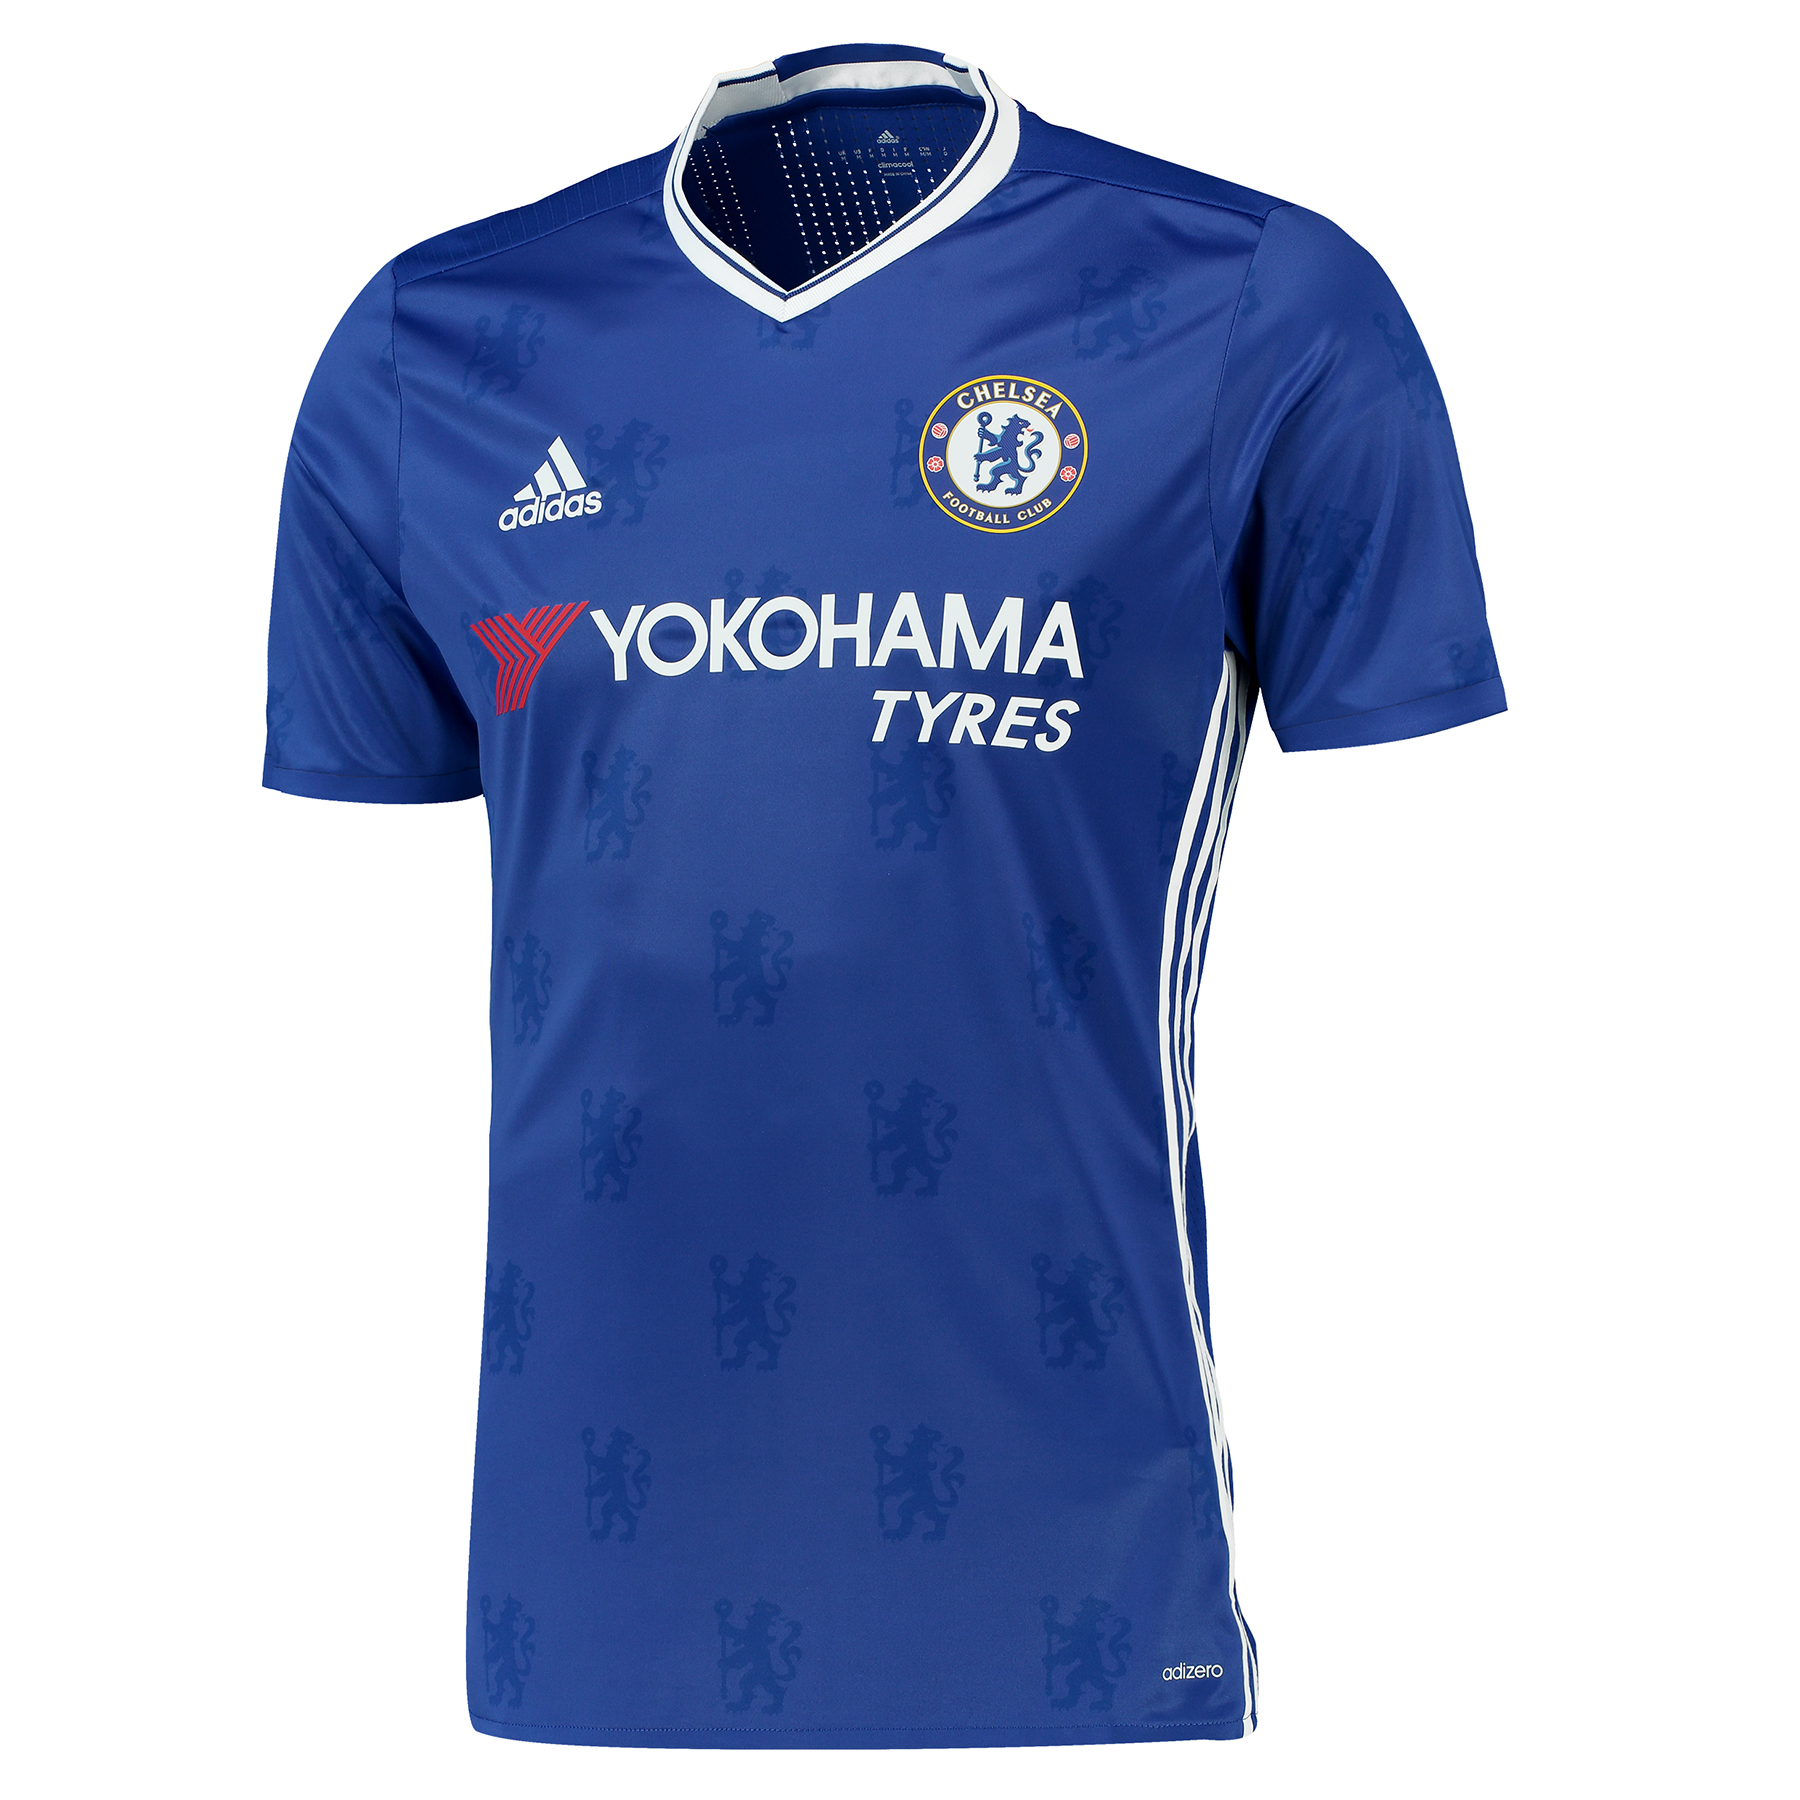 Chelsea Home adizero Shirt 2016-17   Experience 100% authenticity with the official Chelsea Home adizero Shirt 2016-17.   This authentic Chelsea 2016-17 adizero home shirt is identical to the cutting edge, athletic fit jersey worn by the Blues' first team in their Premier League fixtures at Stamford Bridge, with 100% polyester interlock composition providing enhanced ease of movement in comfort.   Made with advanced adizero fabric designed for top-level athletes, this high-end game jersey benefits from the latest in adidas matchwear technology, with its unrivalled texture and tactility providing the same accurate touch and feel enjoyed by players on English football's grandest stage.   With premium features including an engineered back panel for superior ventilation, heat transferred lightweight chest elements to eliminate unnecessary weight and a lightweight replication of the famous Chelsea Football Club crest, every fibre of this special jersey is designed with professional performance in mind, with the end experience unparalleled for pros and supporters alike.   Inspired by tradition and shaped by legacy, the latest interpretation of the Chelsea colours restores a classic Stamford Bridge image, with its vintage v-collar drawing allusion to Lions sides of yesteryear.   With the Chelsea crest's central lion motif forming the basis of a unique, all-over pattern print, the jersey's adidas Three Stripe branding is meanwhile featured in a contemporary side placement, completing a winning mix of old and new ready for the Blues' renewed title challenge.   Benefits:   Authentic athletic fit jersey Advanced adizero technology Highly-breathable fabric Breathable mesh linings Mesh ventilation inserts Heat transferred chest Engineered back panel Lightweight club crest V-collar and short sleeves All-over lion print design 3 Stripe tape elements 100% polyester interlock